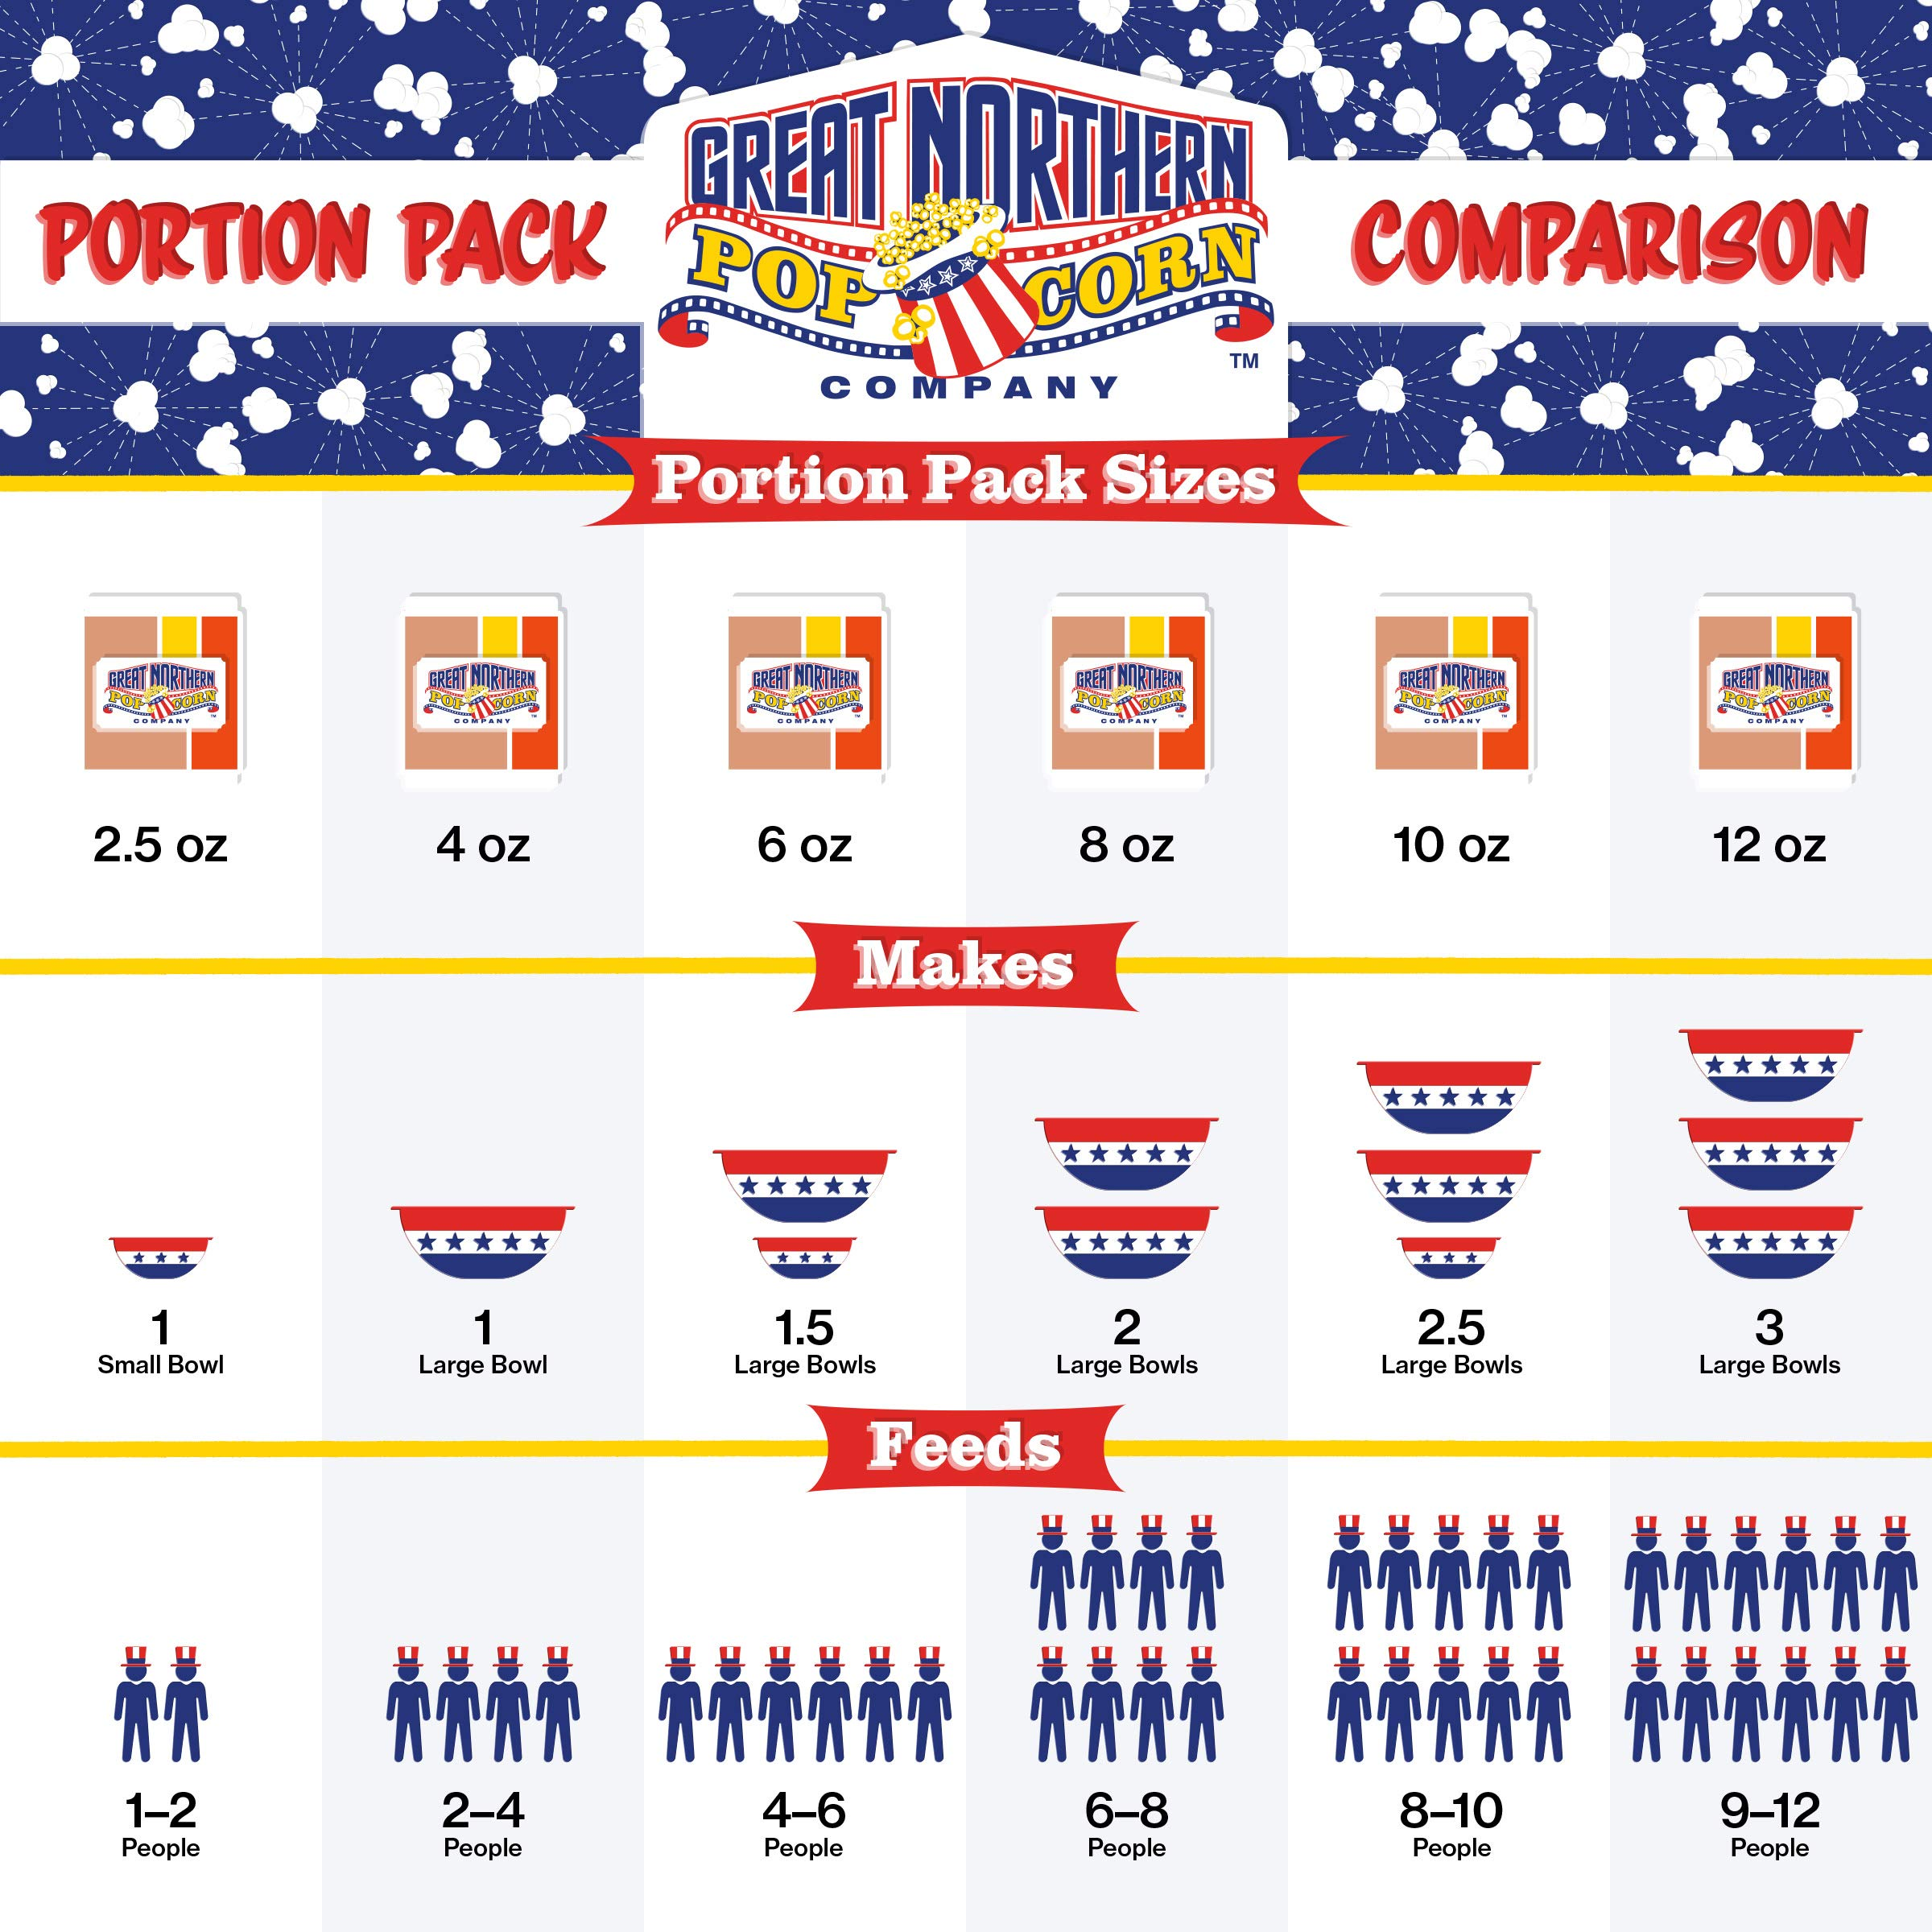 GREAT NORTHERN POPCORN COMPANY - 8 oz Popcorn Packs – Pre-Measured, Movie Theater Style, All-in-One Kernel, Salt, Oil Packets for Popcorn Machines (Pack of 24)